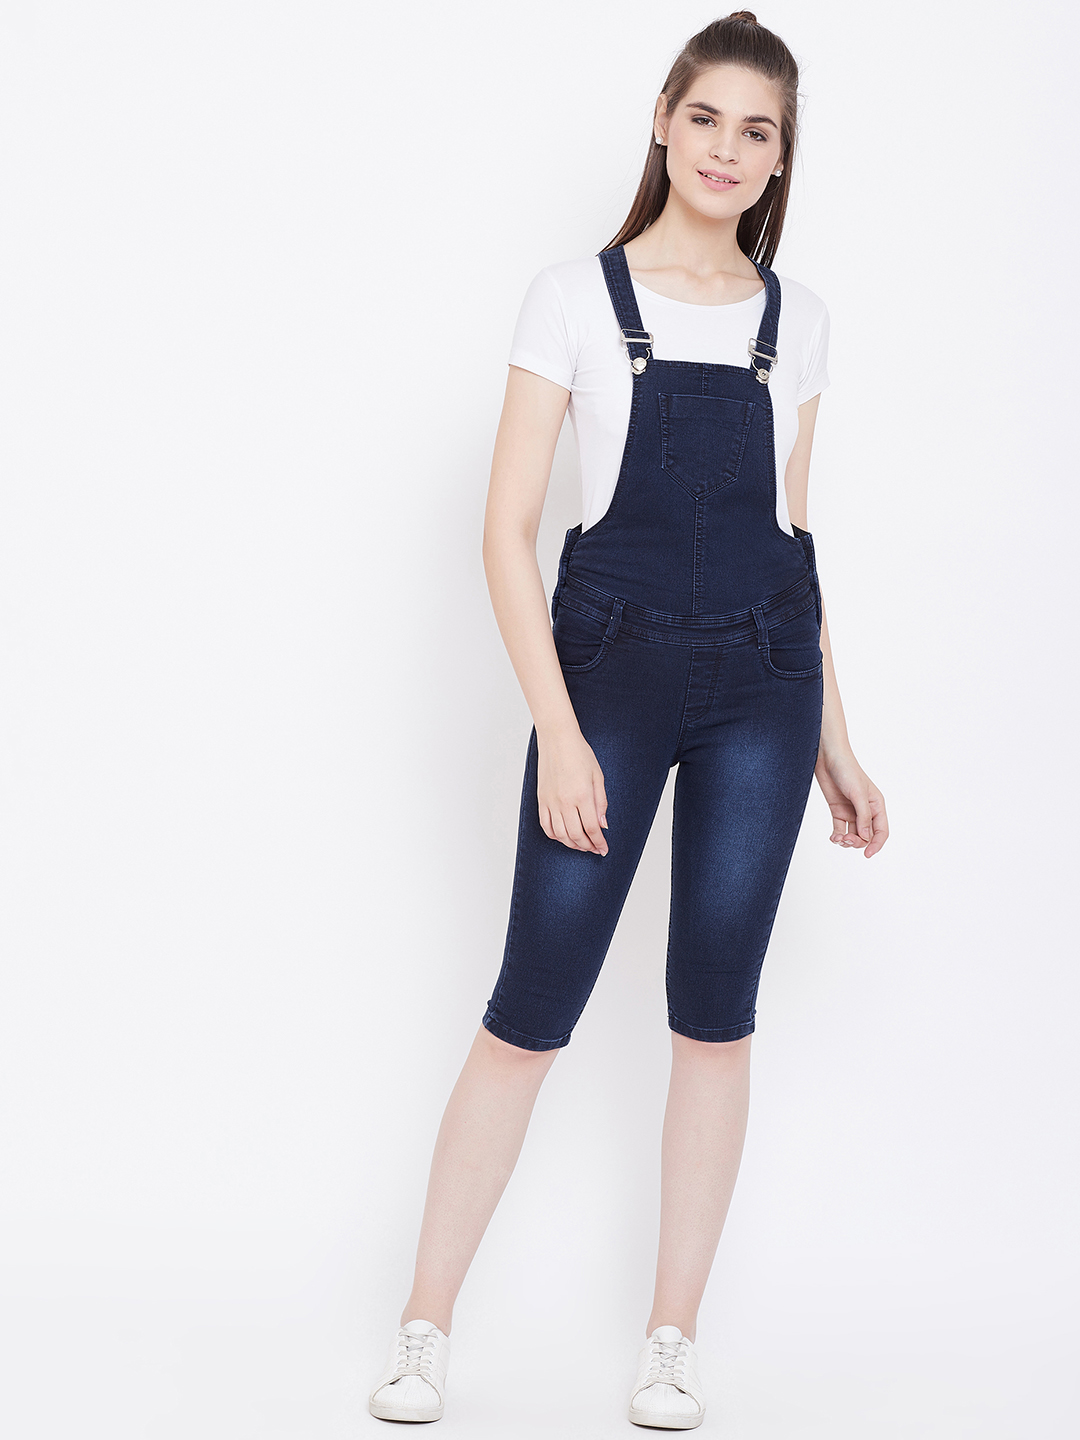 Nifty | Nifty Women's Dungarees